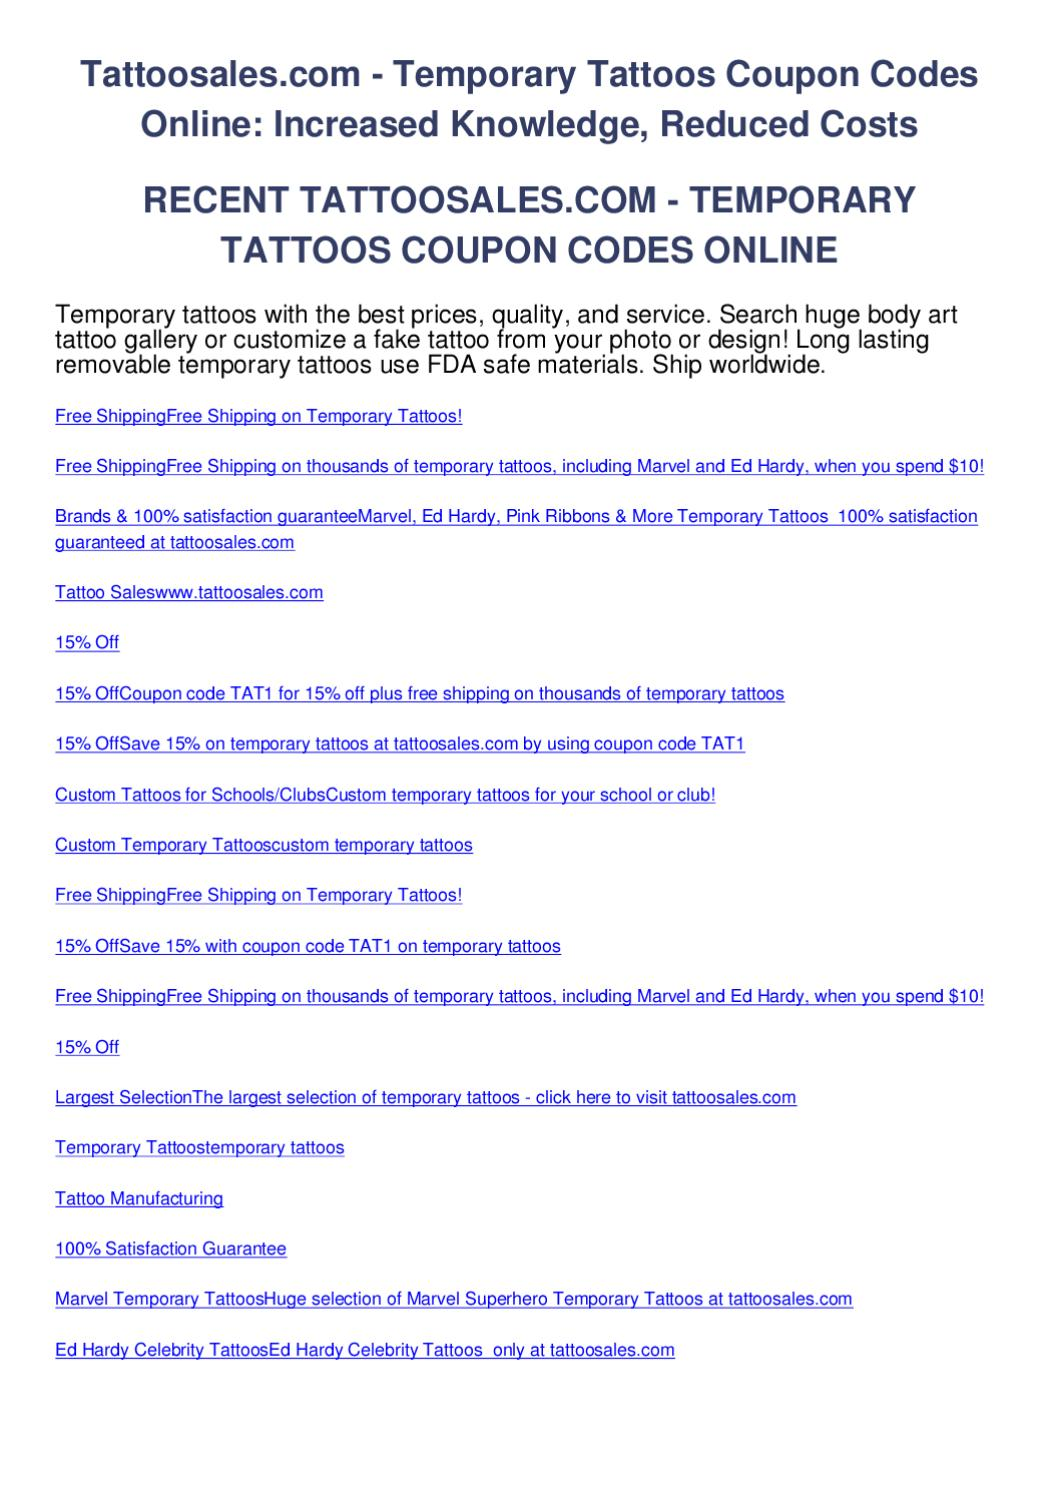 Tattoosales.com - temporary tattoos coupon codes online by salem ...